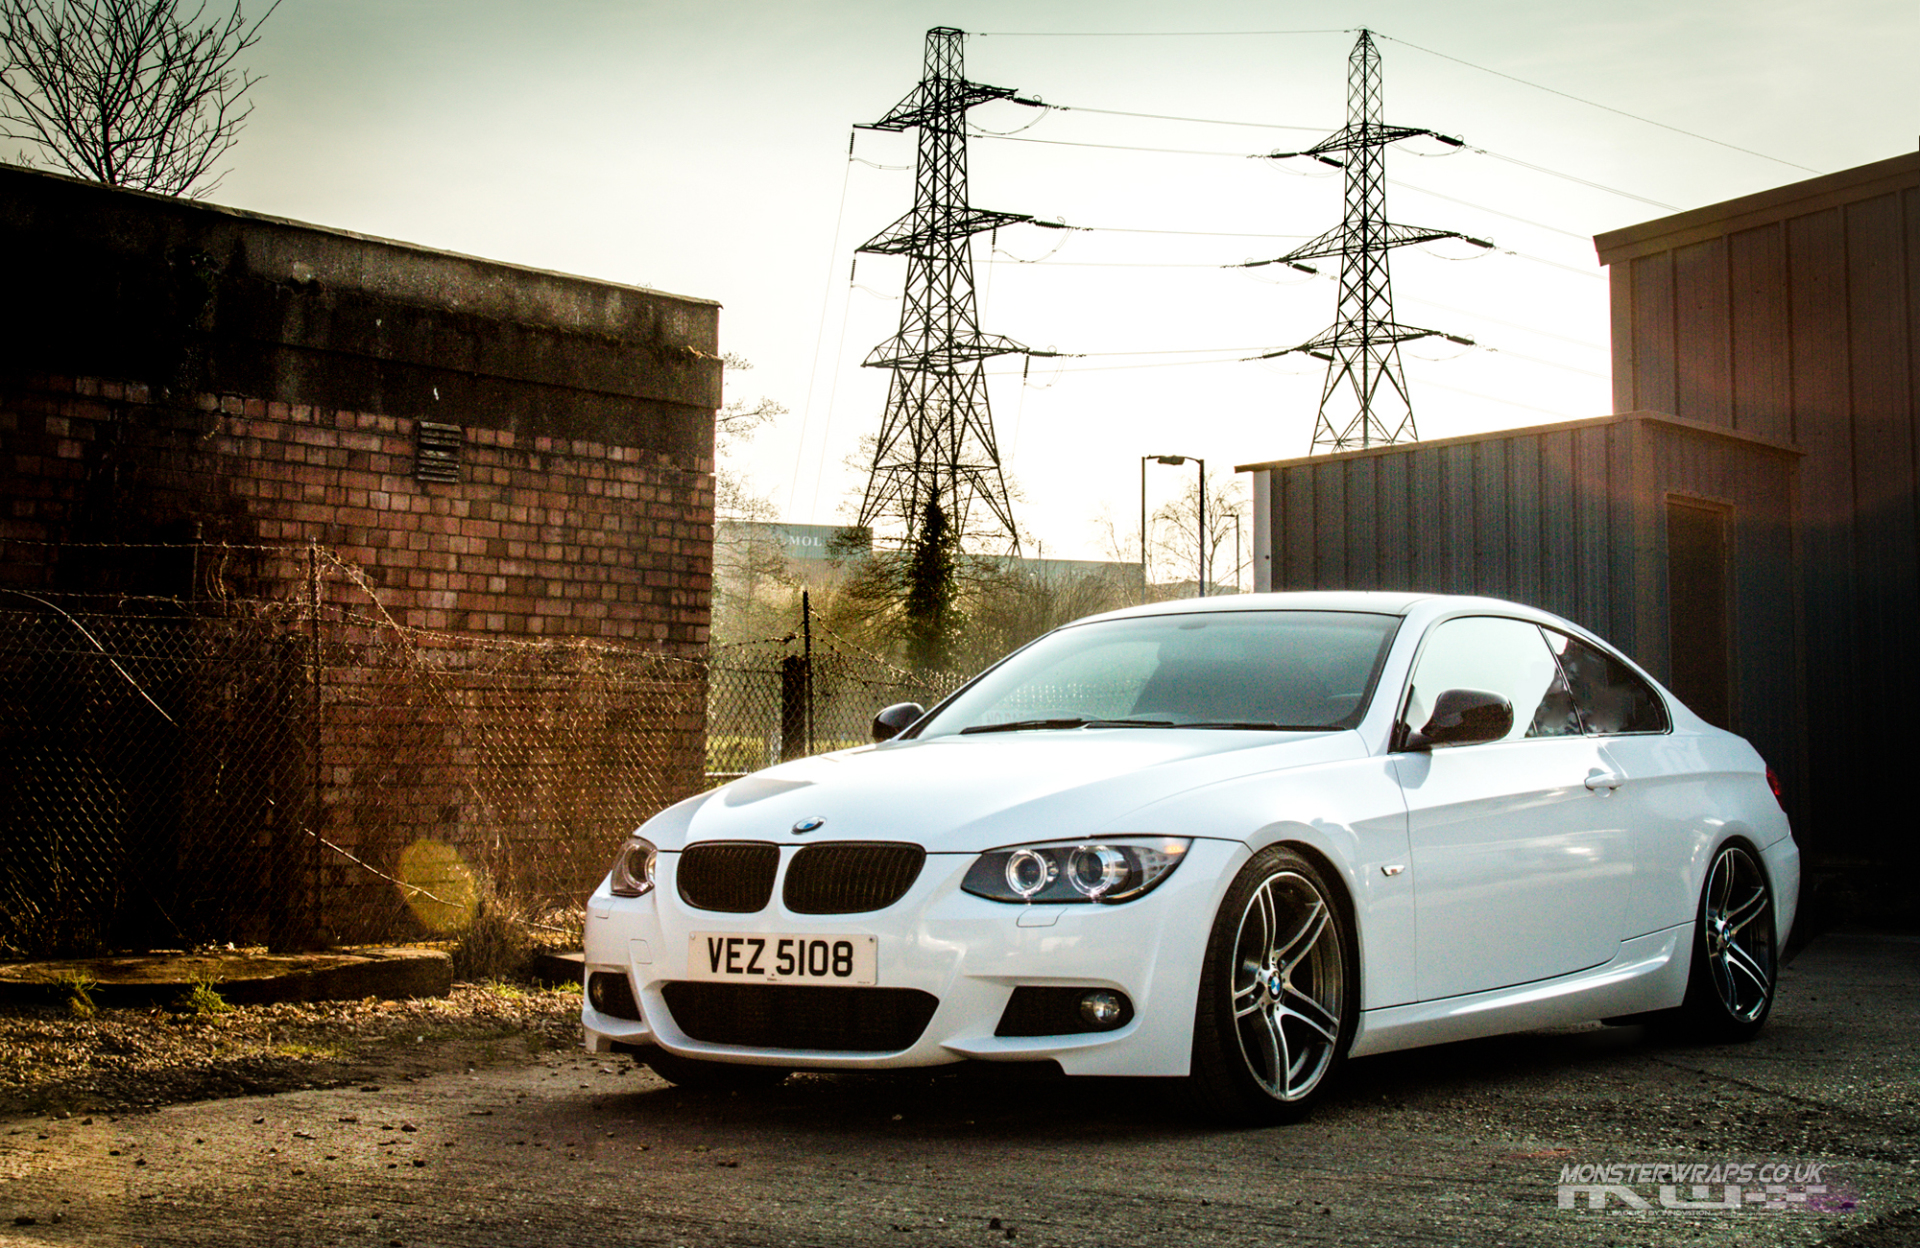 BMW 3 series E92 gloss white wrap 3M 1080 monsterwraps